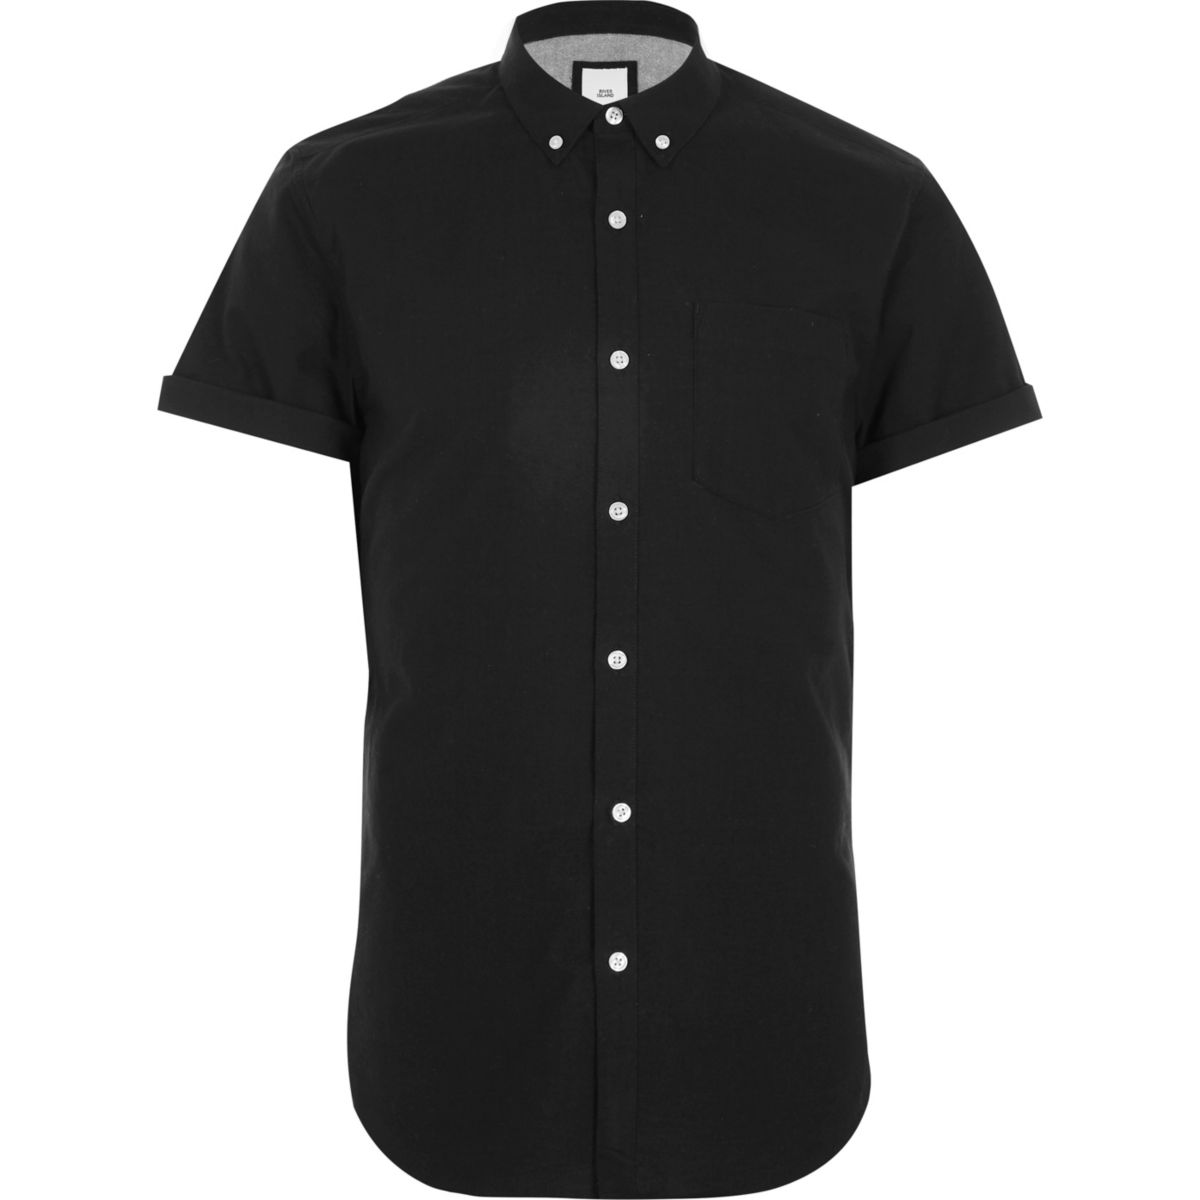 Black short sleeve slim fit oxford shirt shirts sale men for Mens slim fit short sleeve shirt